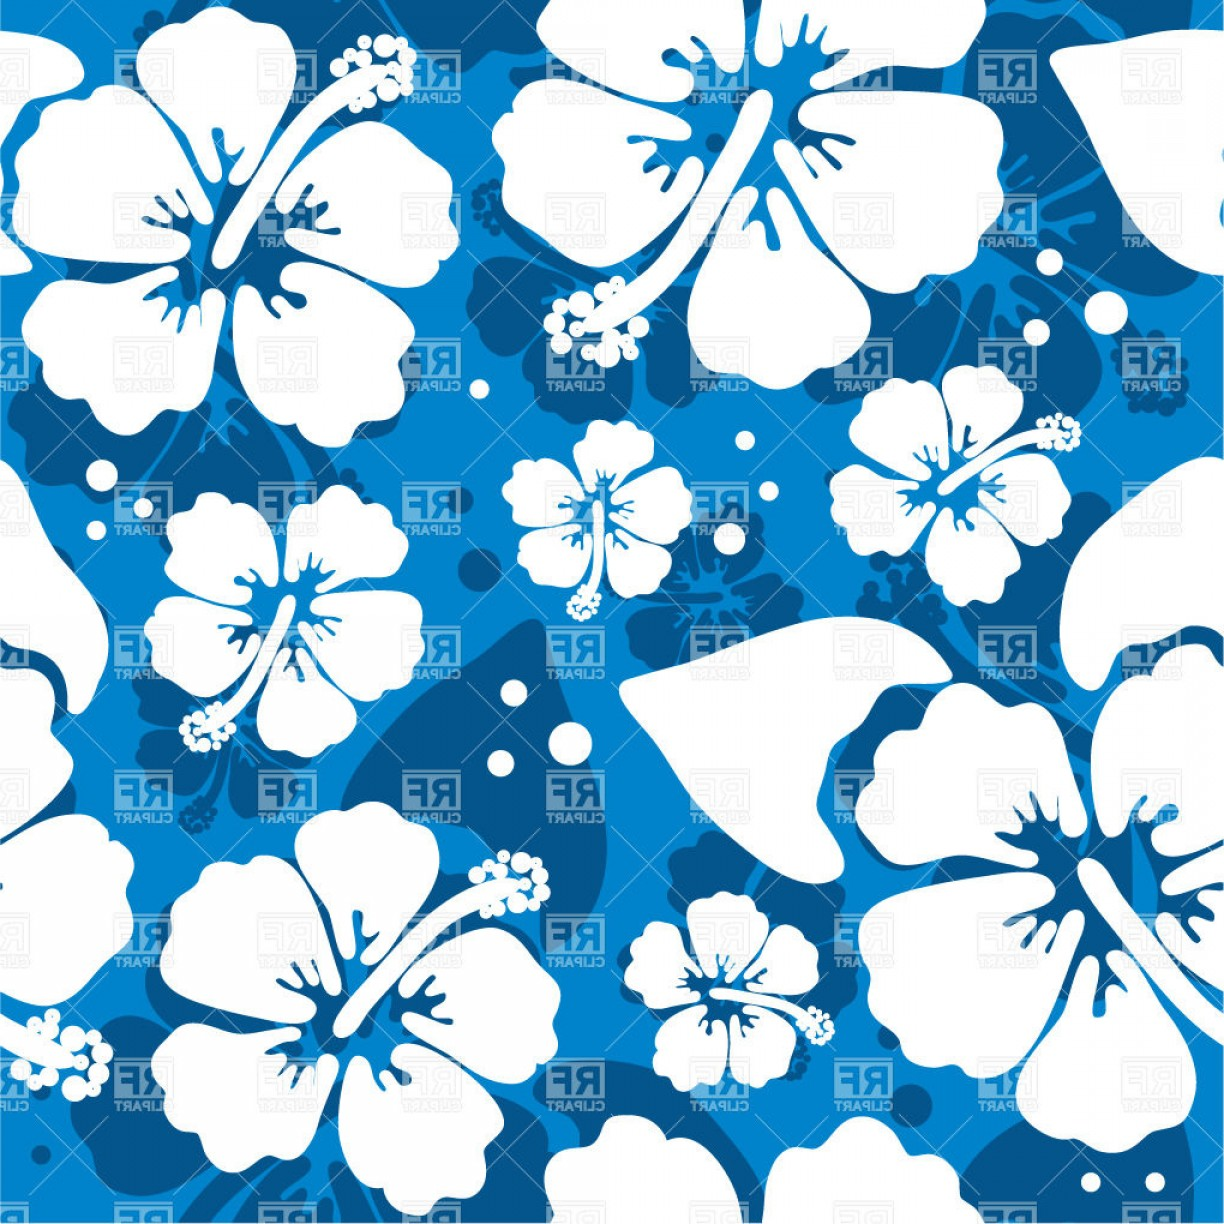 Hawaiian Flower Seamless Vector Pattern: Artistic Seamless Blue Pattern With Hawaiian Hibiscus Flower Vector Clipart